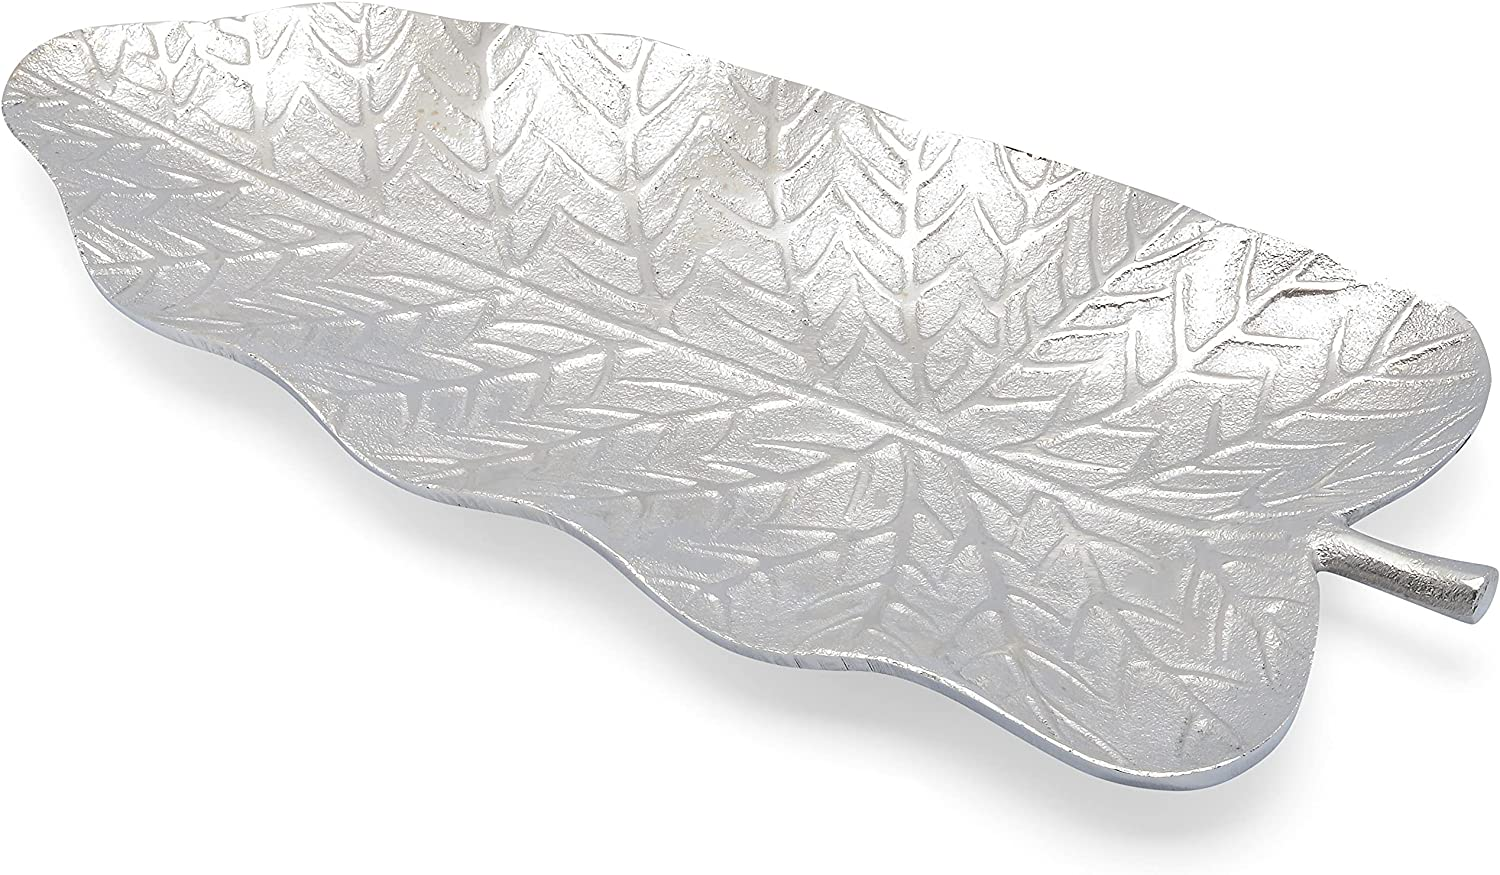 Cheer Collection Decorative Silver Leaf Shape Serving Tray - Large Nickel Plated Candy Dish (13.25